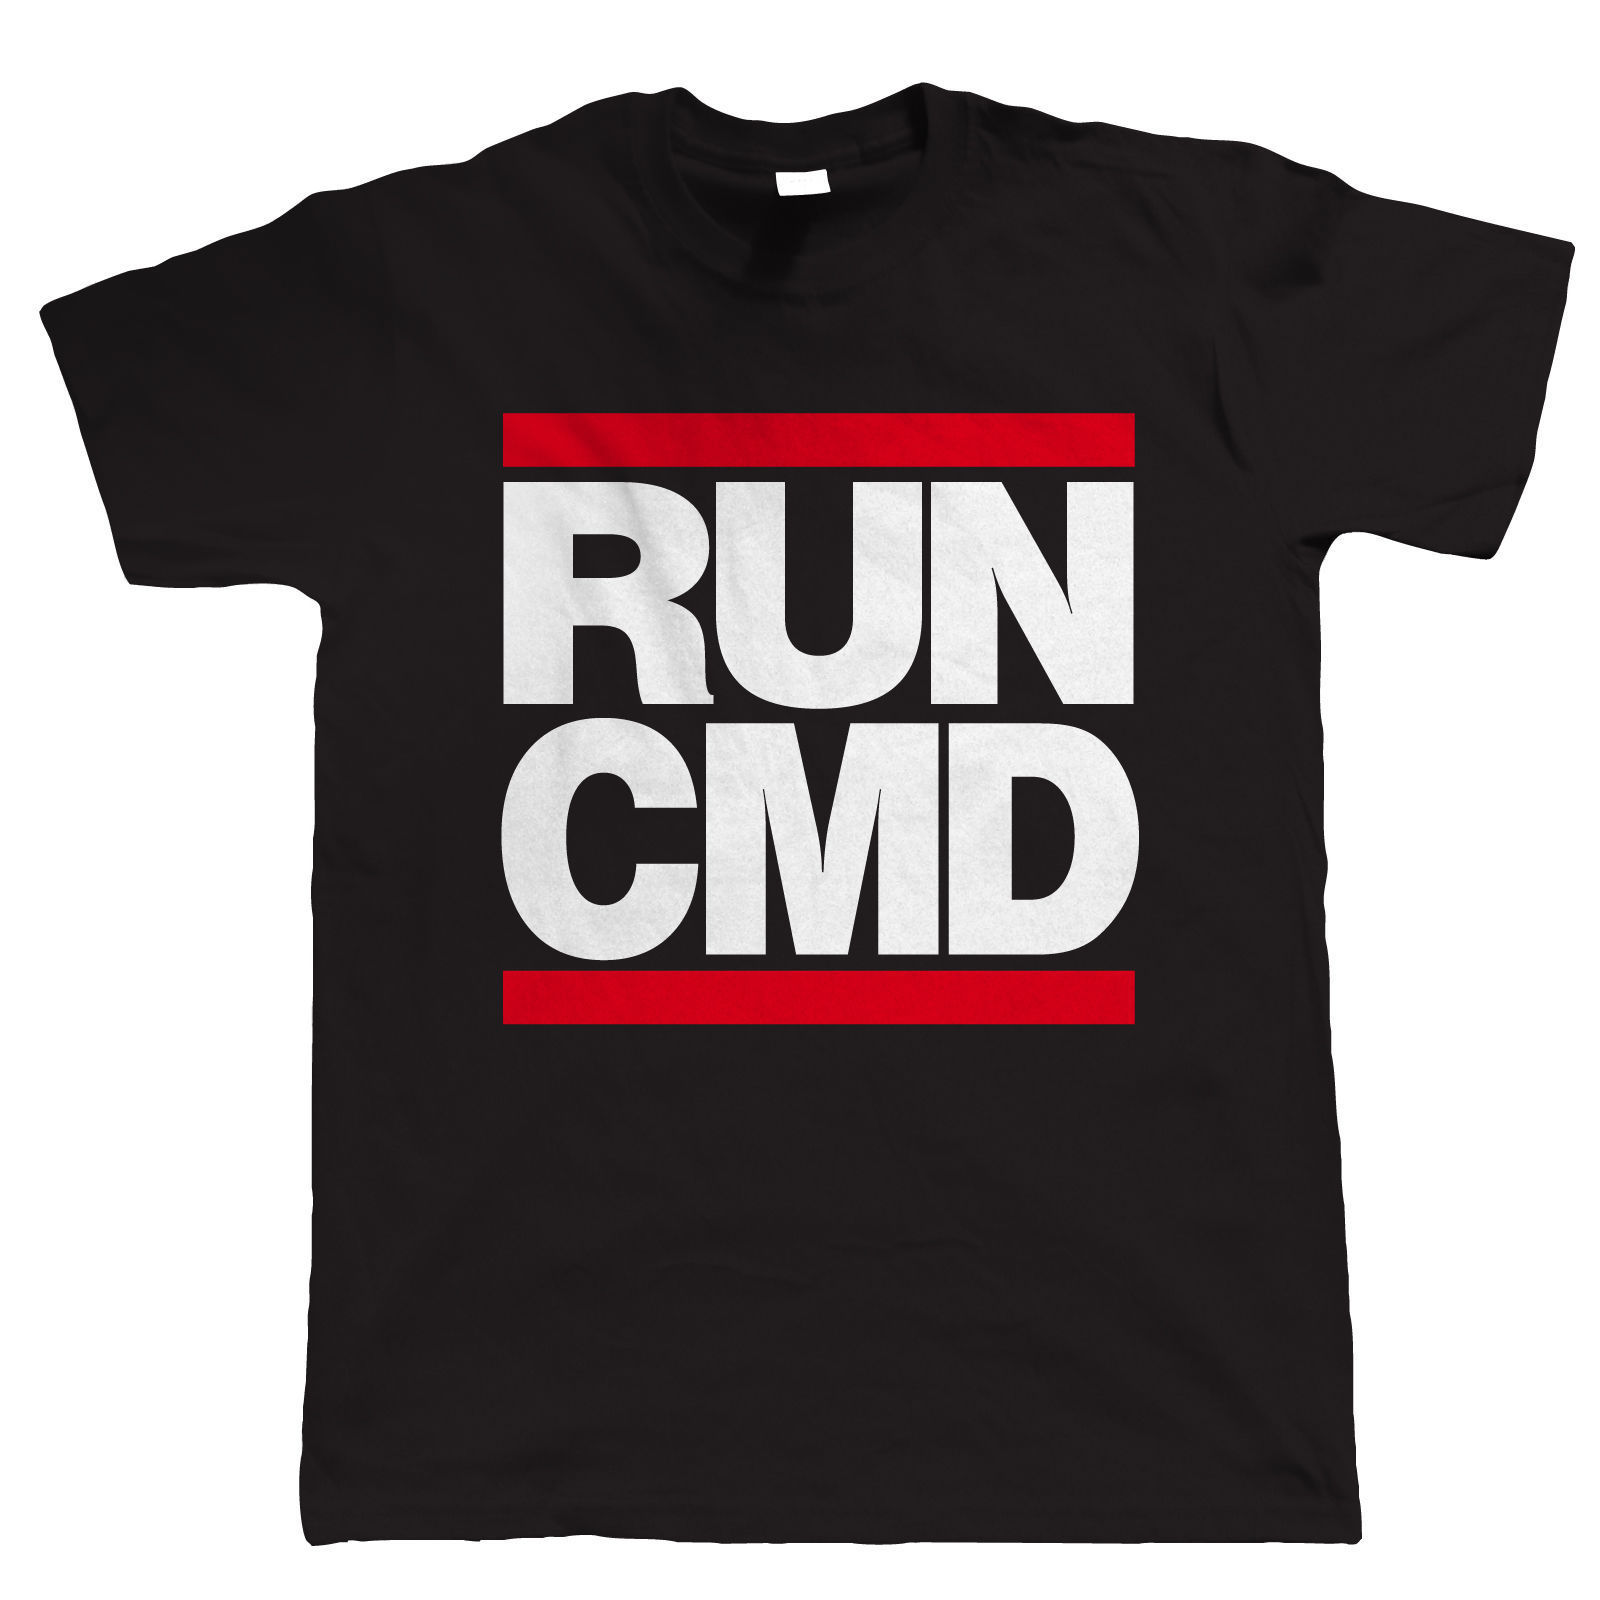 RUNER CMD Web Developer PC Gamer Geek T Shirt New Short Sleeve Round Collar Mens T-Shirts Fashion 2018 Pop Cotton Man Tee ...